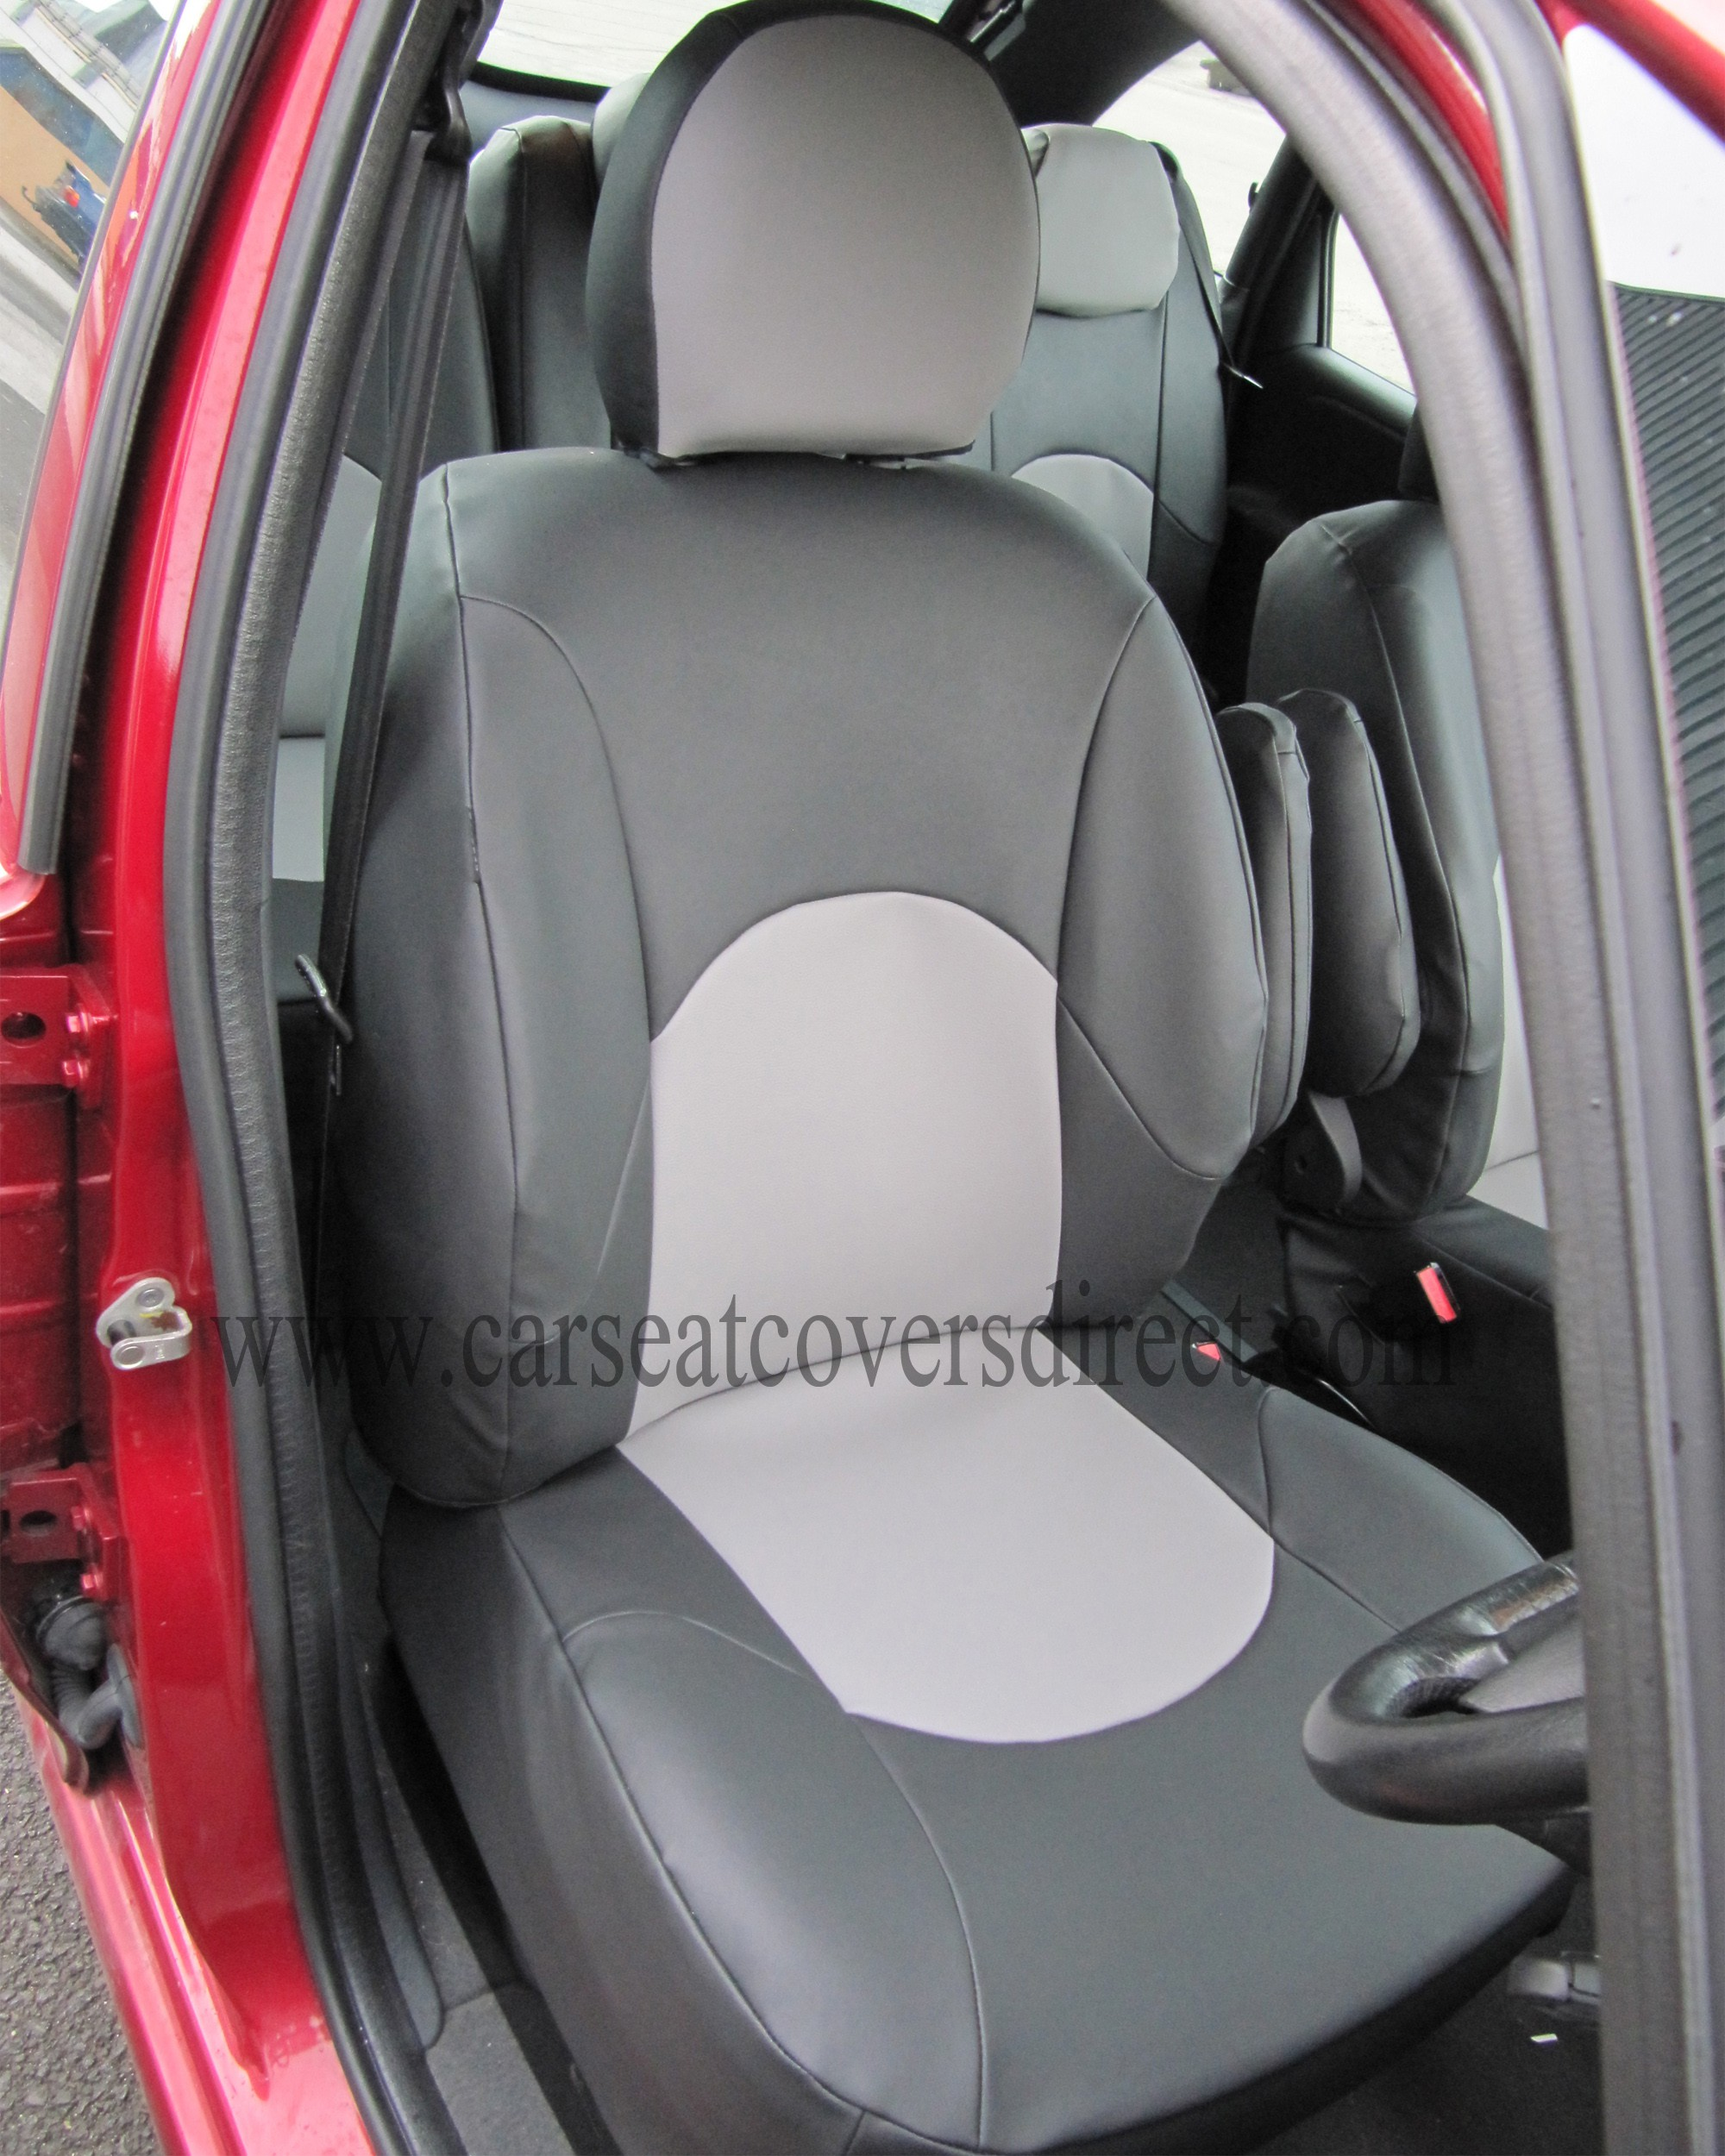 CITROEN XSARA PICAS Black & Grey Seat Covers